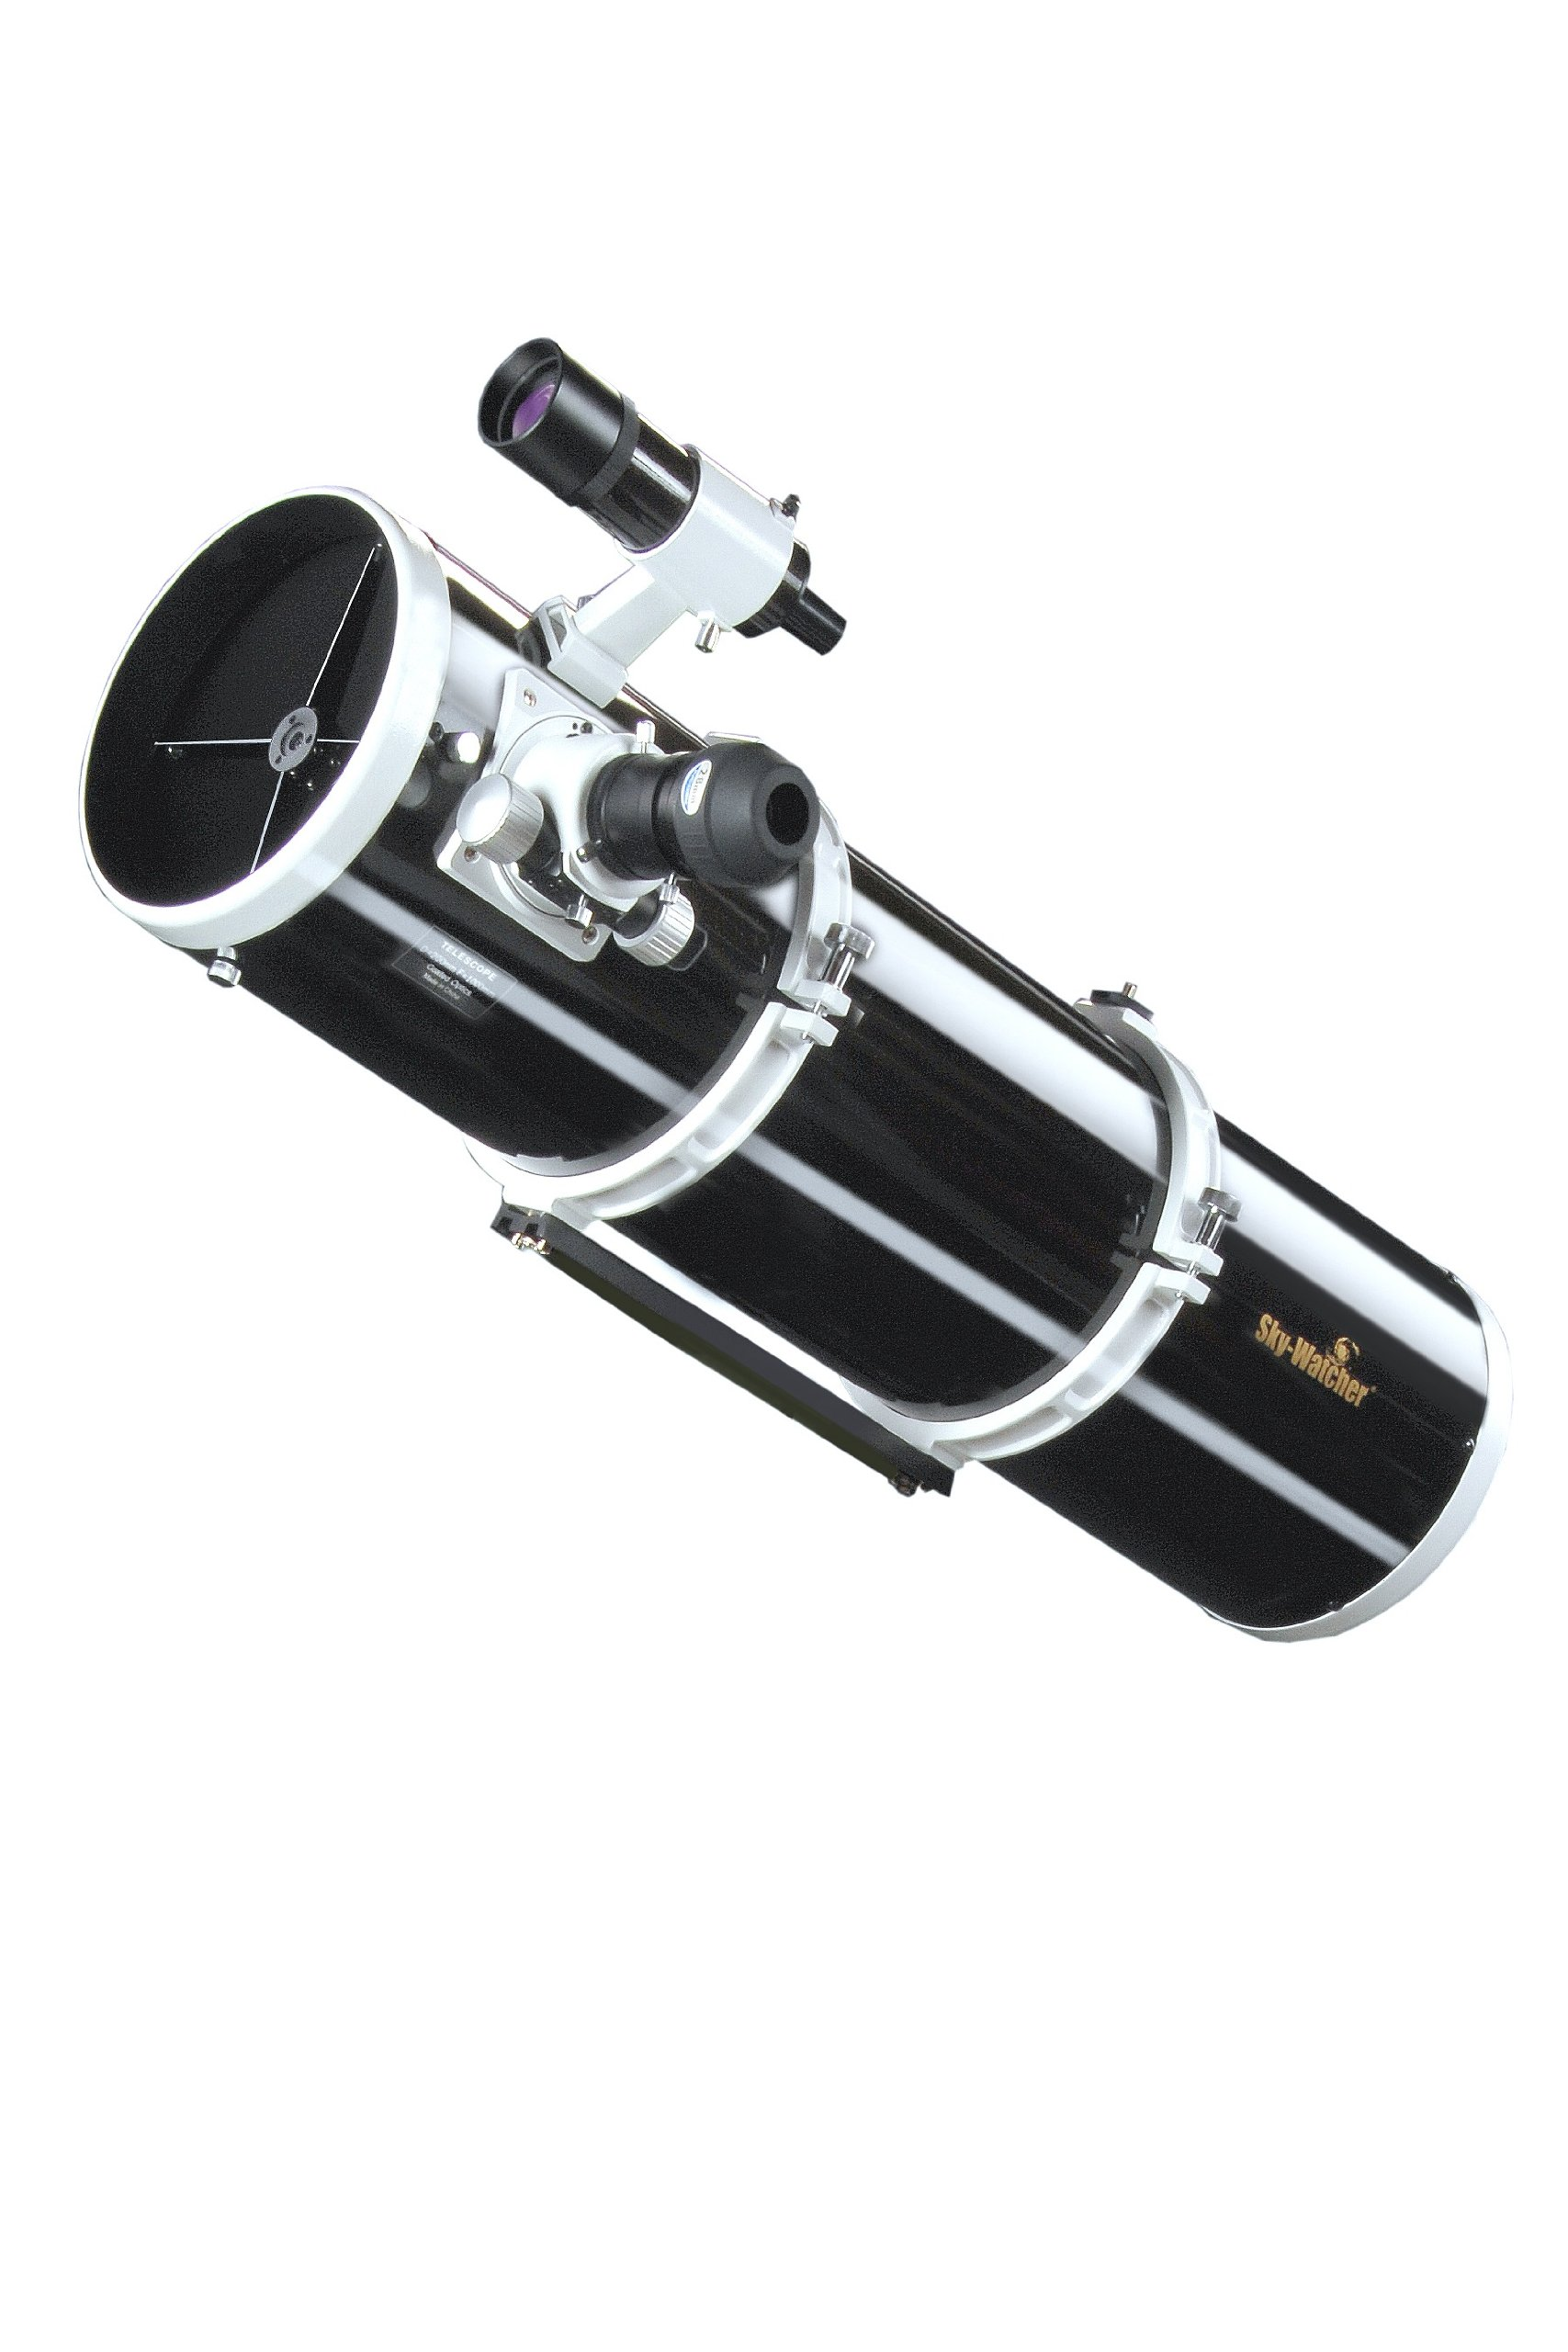 Skywatcher Explorer-200PDS OTA Dual-Speed Newton Telescope with Parabolic Mirror 200 mm / 8-Inch/f/5 Black